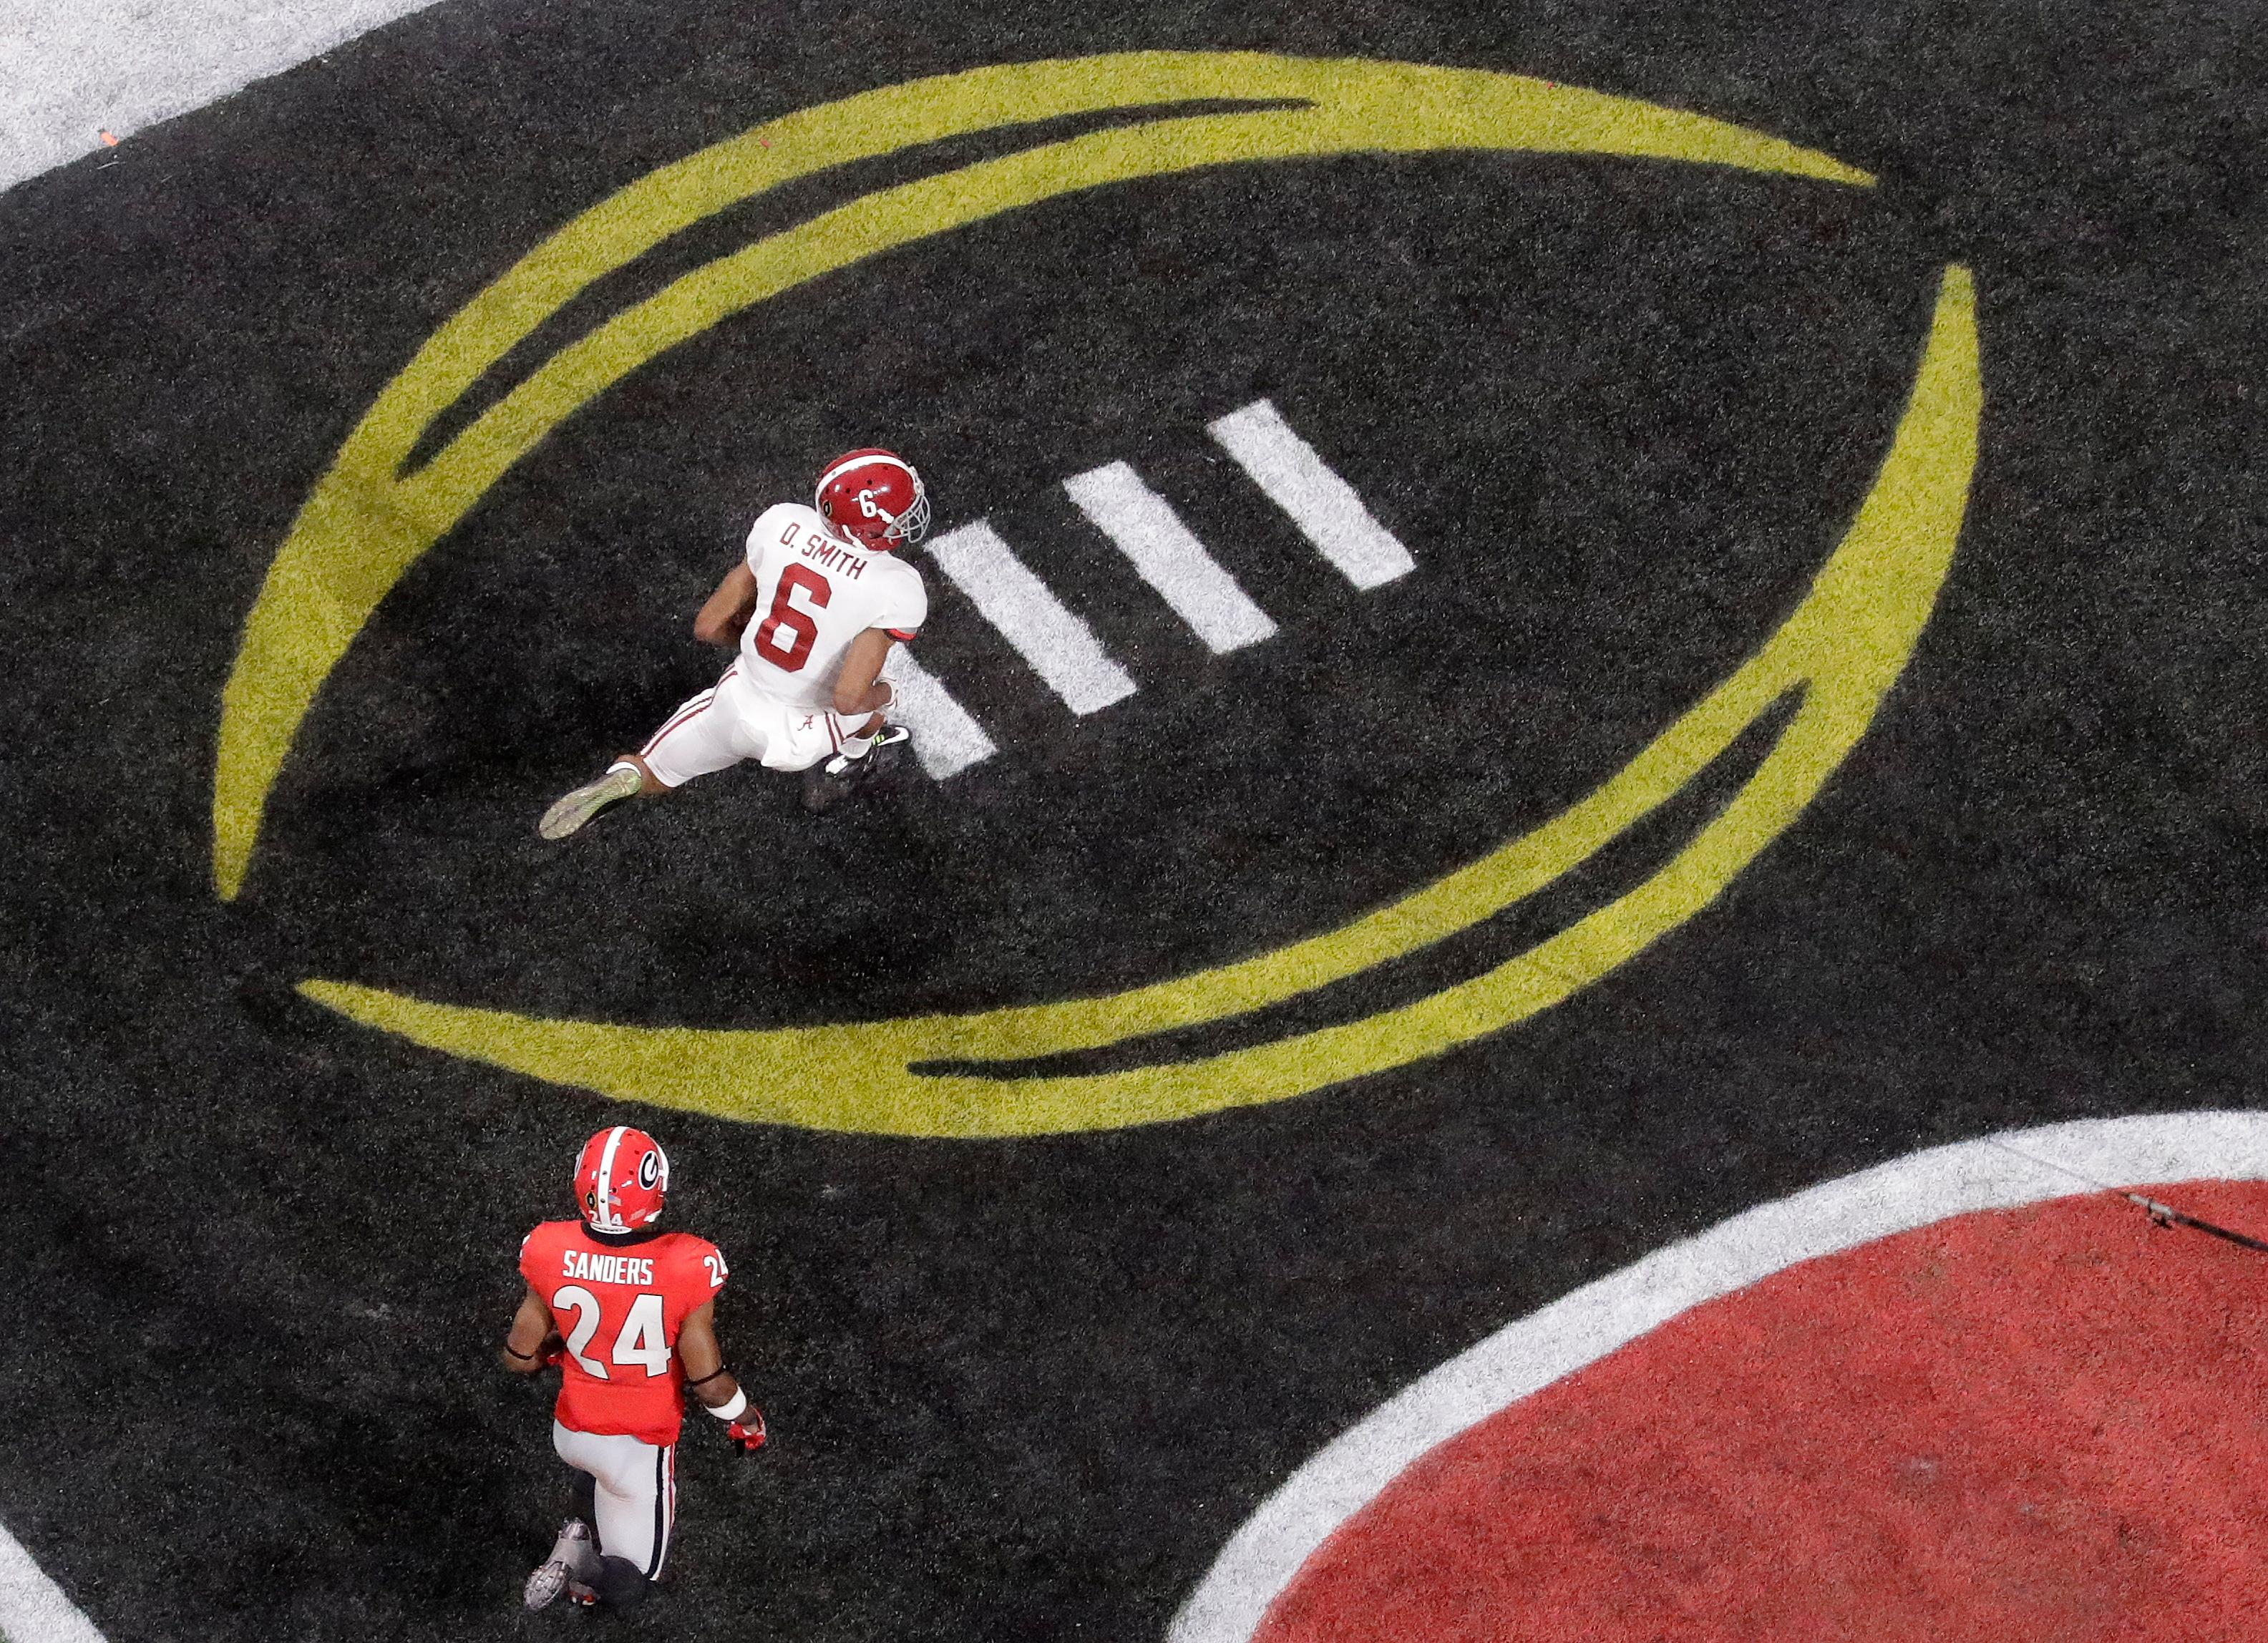 Alabama's DeVonta Smith catches a touchdown pass during overtime of the NCAA college football playoff championship game against Georgia Monday, Jan. 8, 2018, in Atlanta. Alabama won 26-23. (AP Photo/John Bazemore)